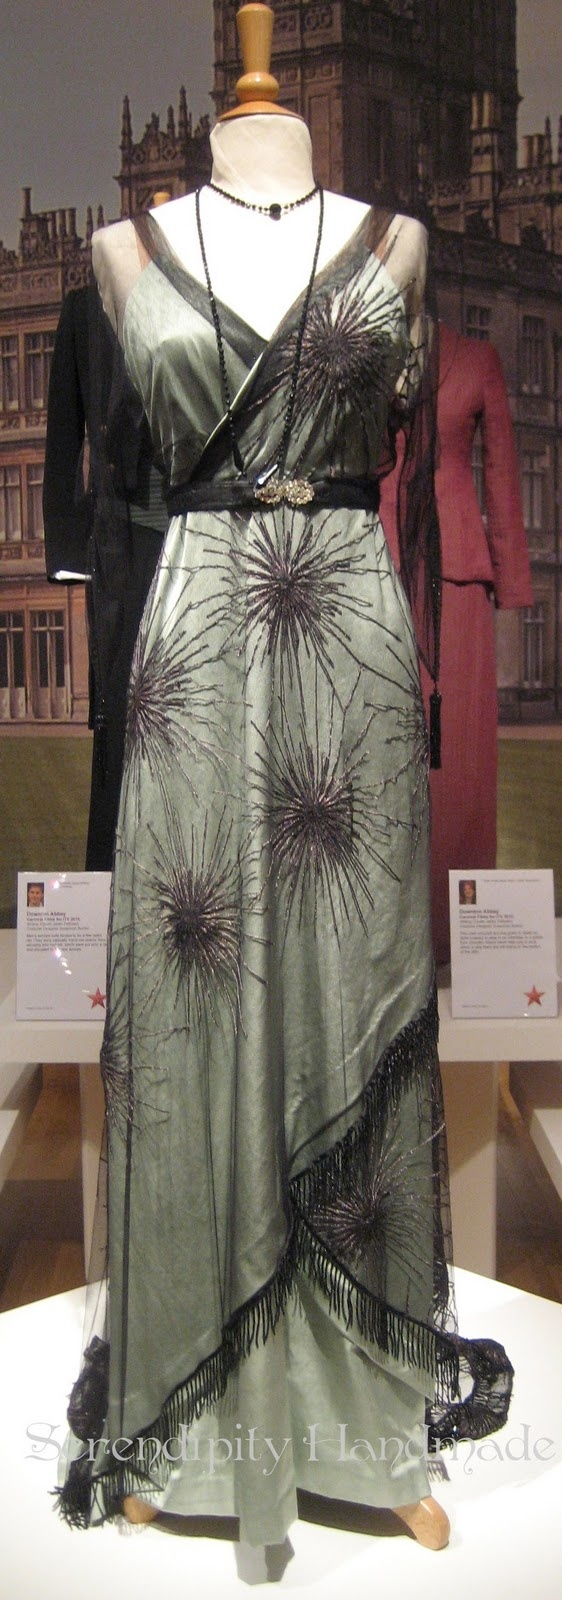 Downton Abbey evening dress - Worn by Lady Mary Crawley, played by Michelle Dockery